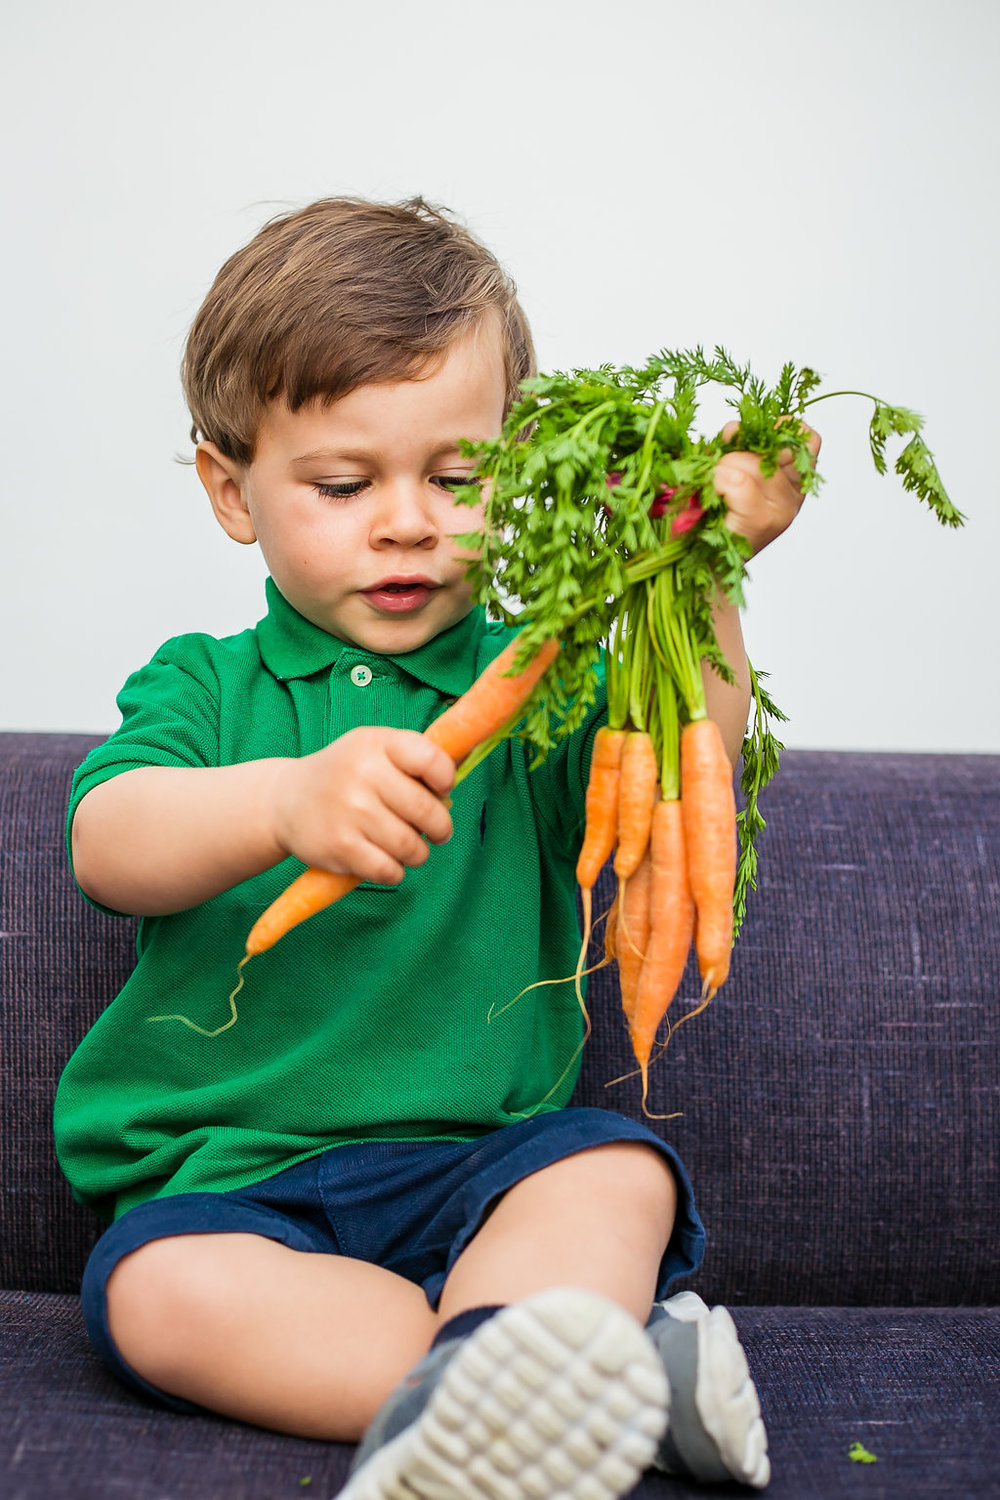 We encourage curiosity in little foodies about what we eat and where it comes from